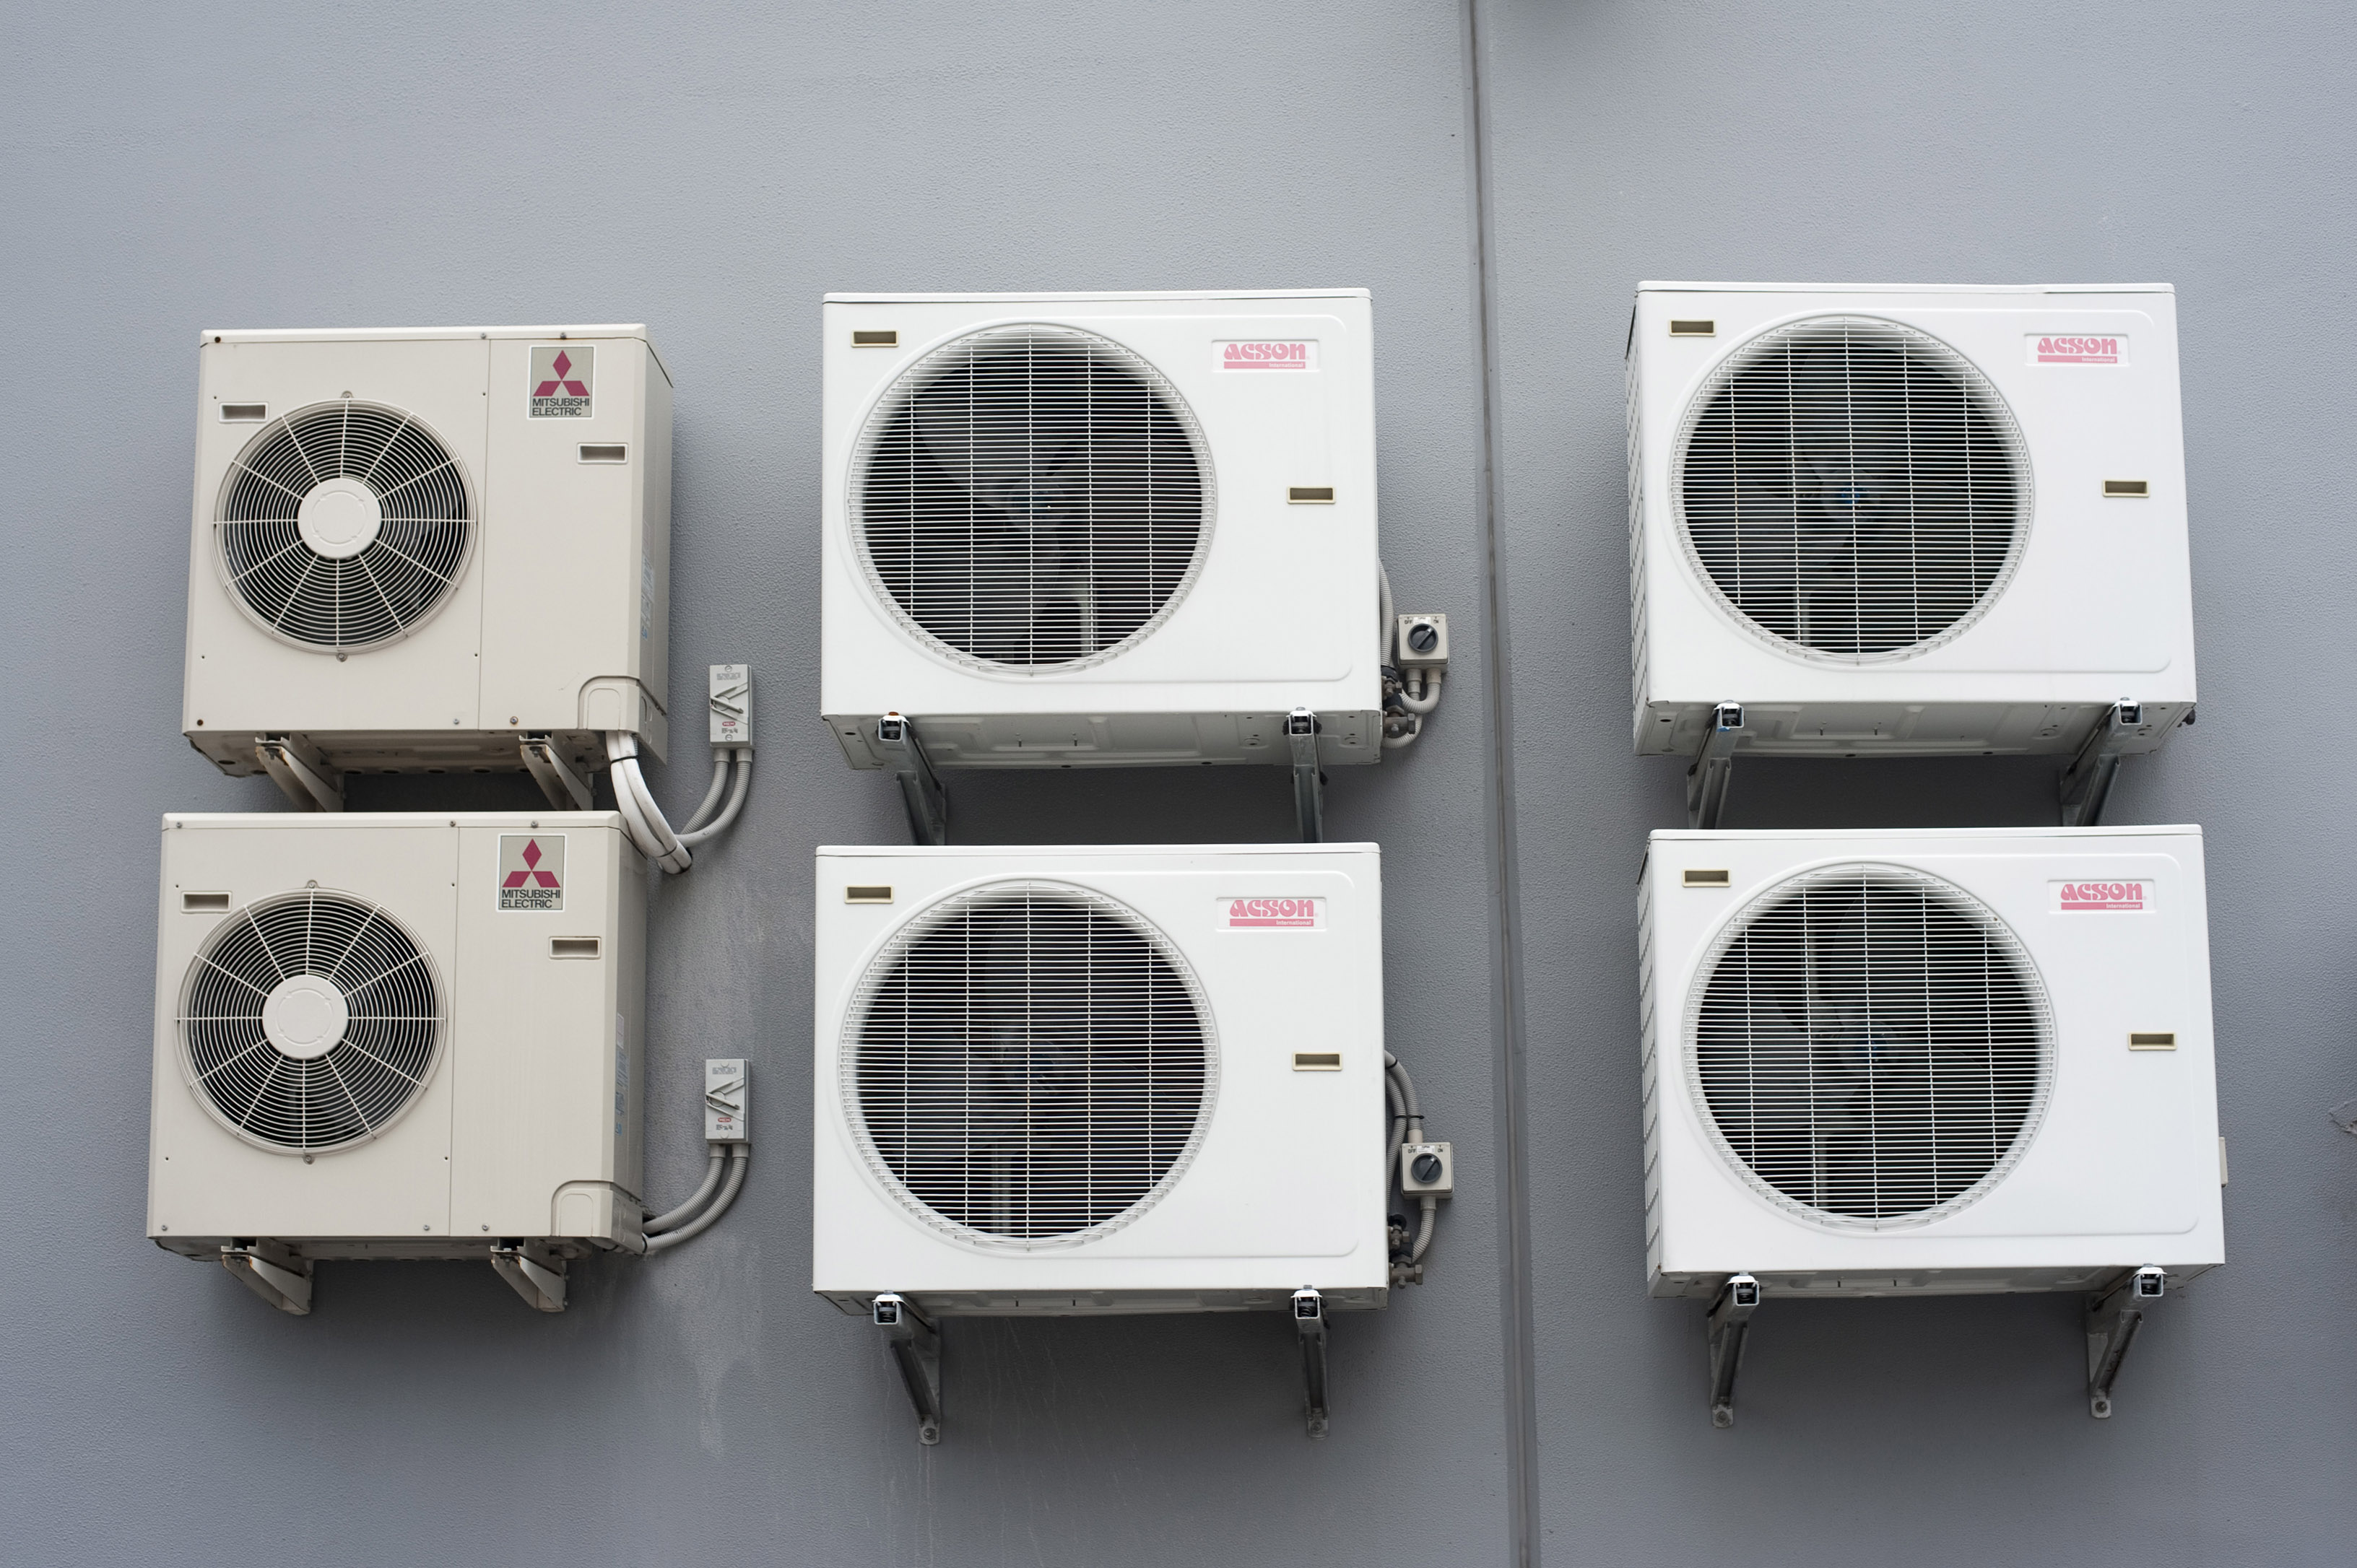 airconditioning heat exchangers on a wall